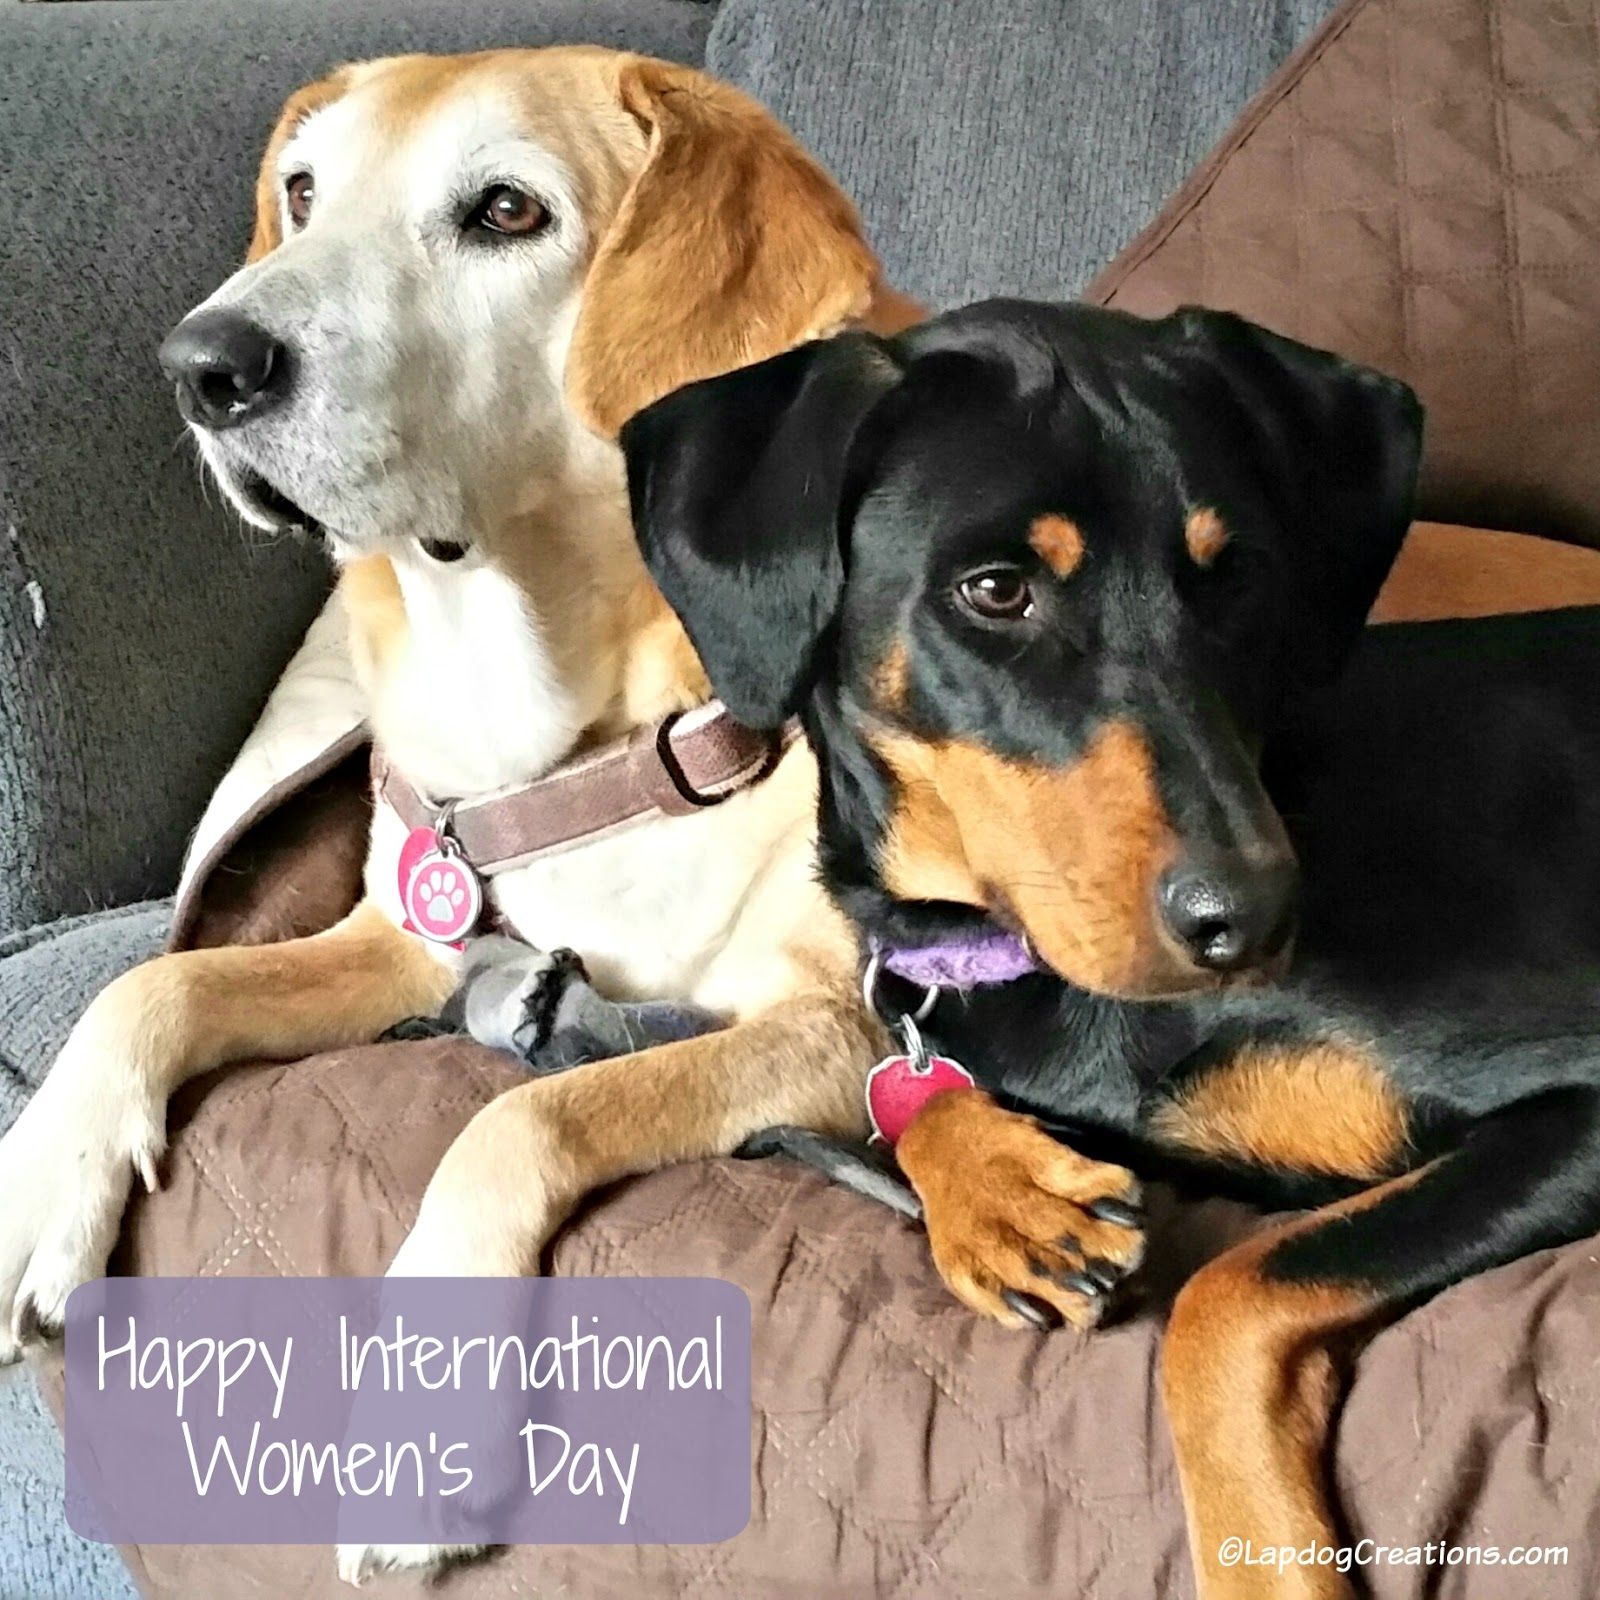 Happy International Womens Day From Sophie & Penny Lapdogcreations Dog